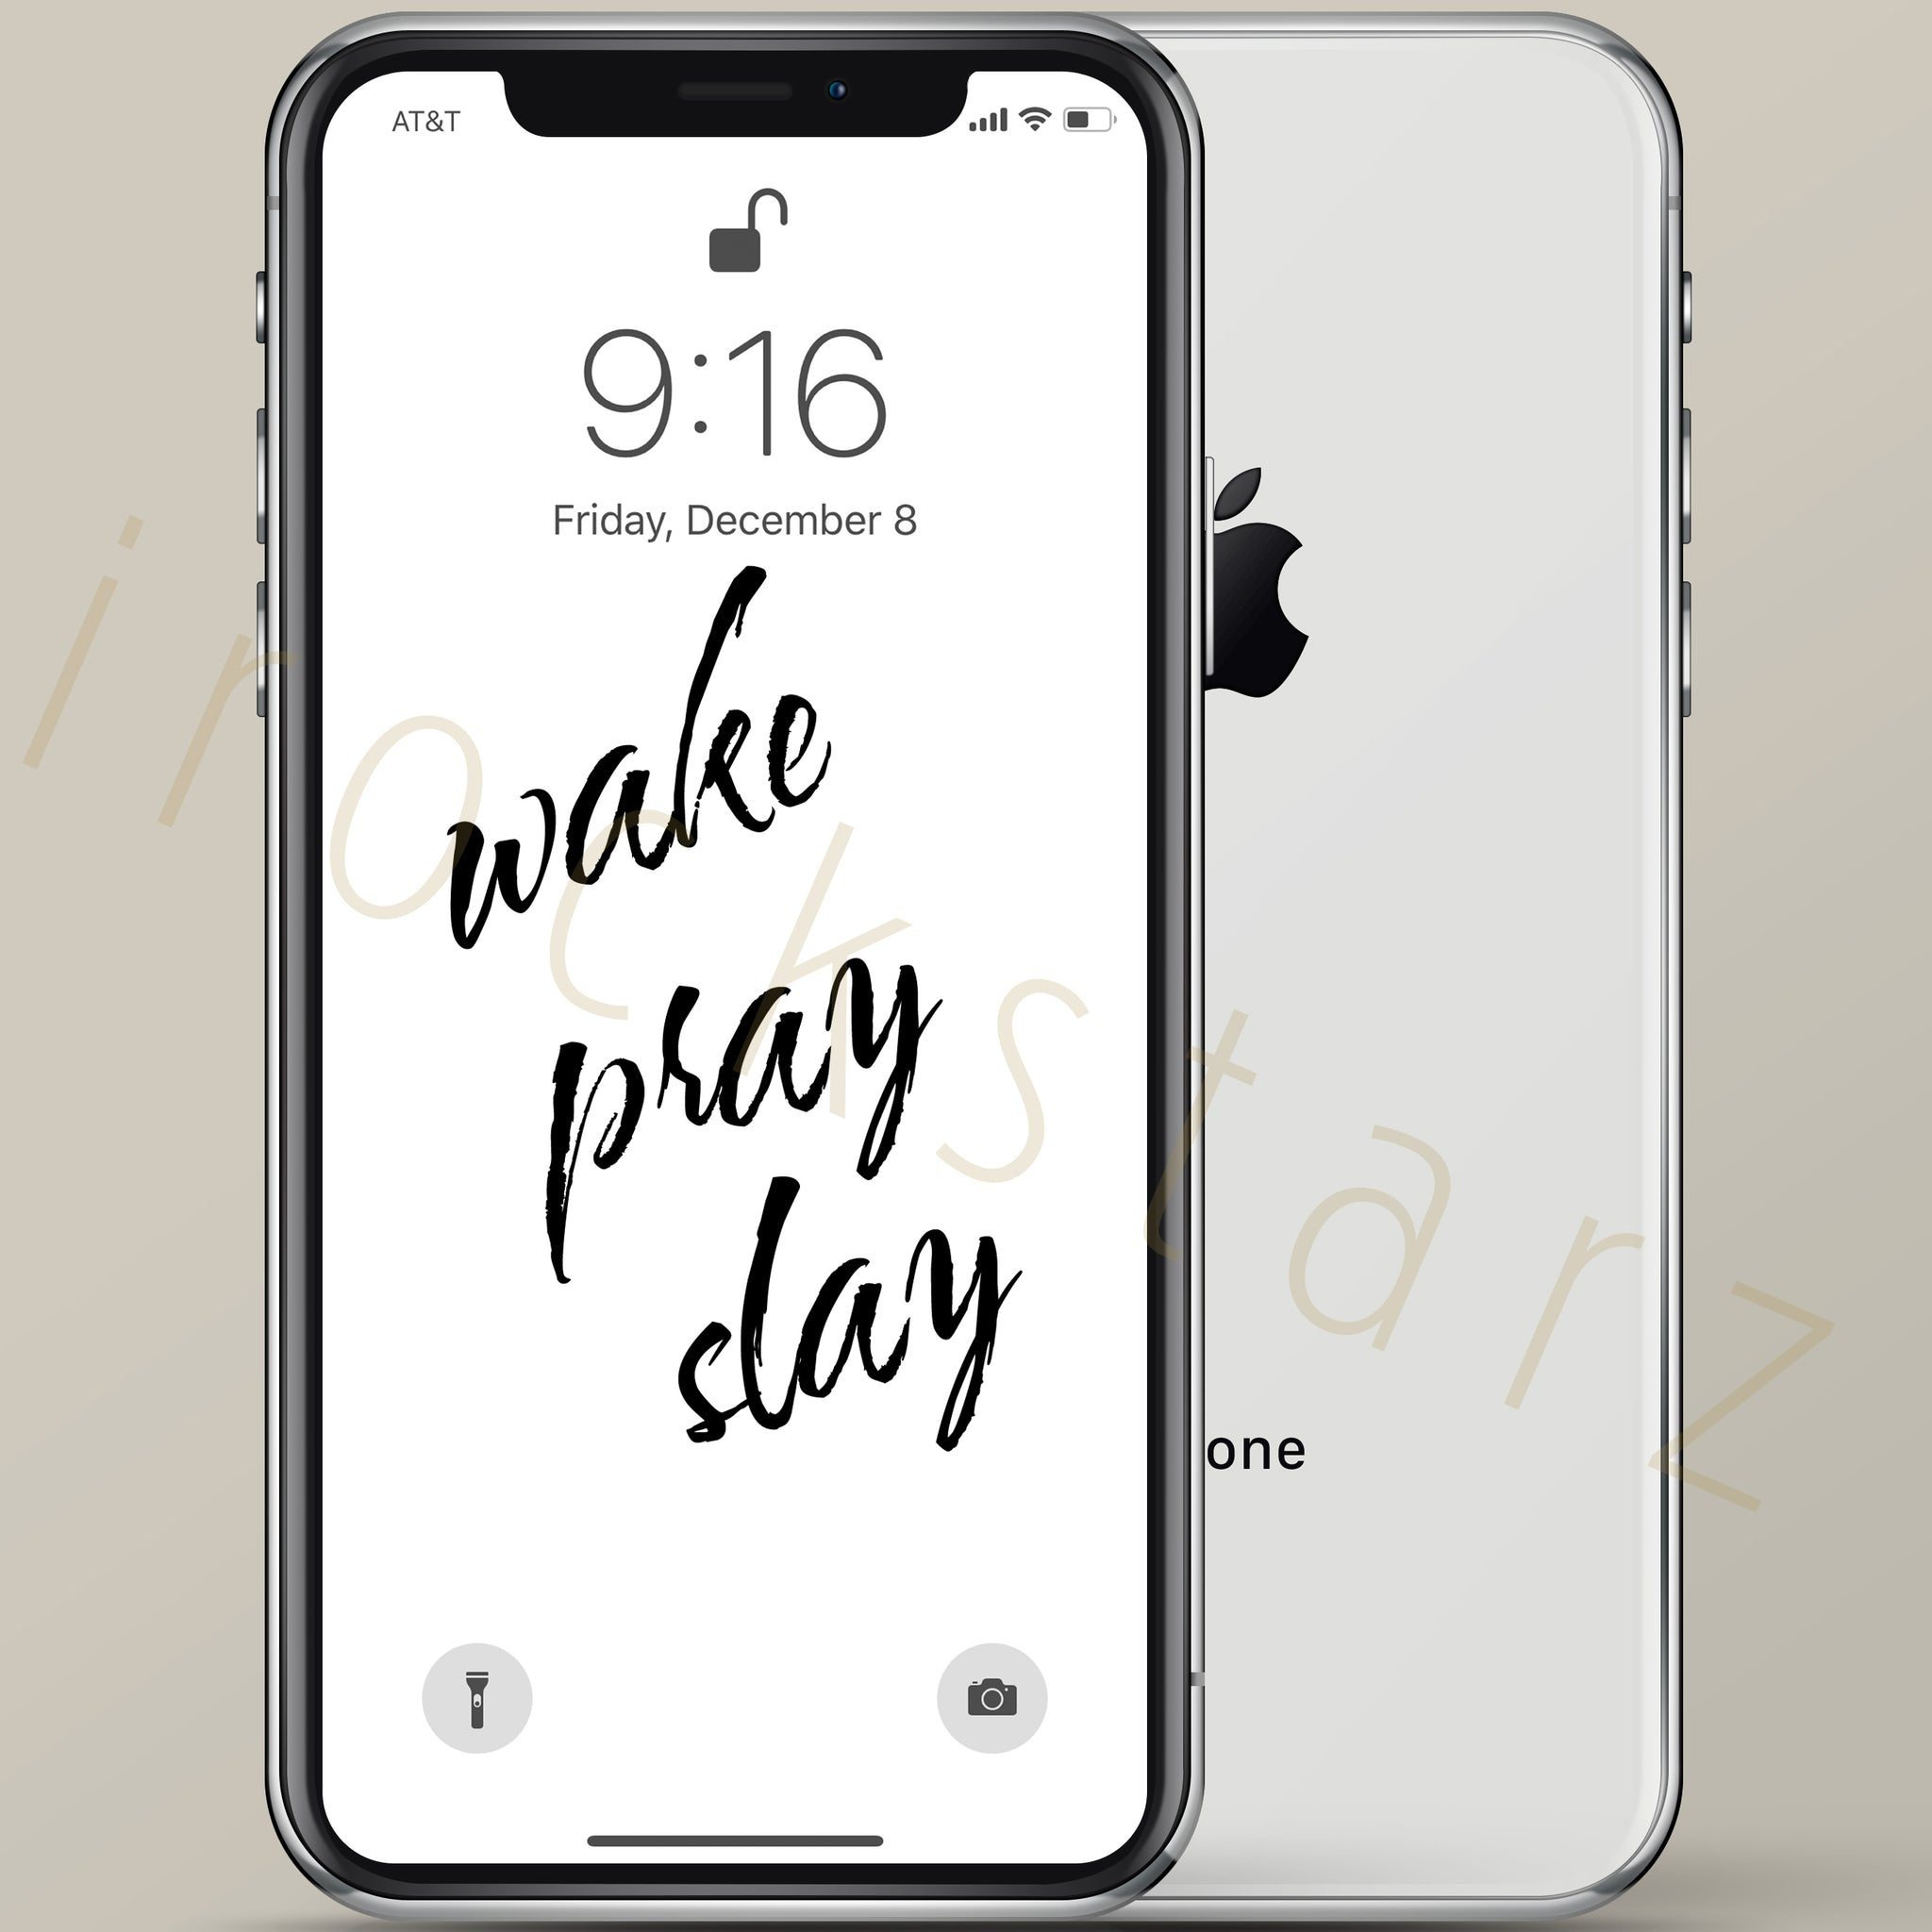 Wake Pray Slay iPhone Wallpaper